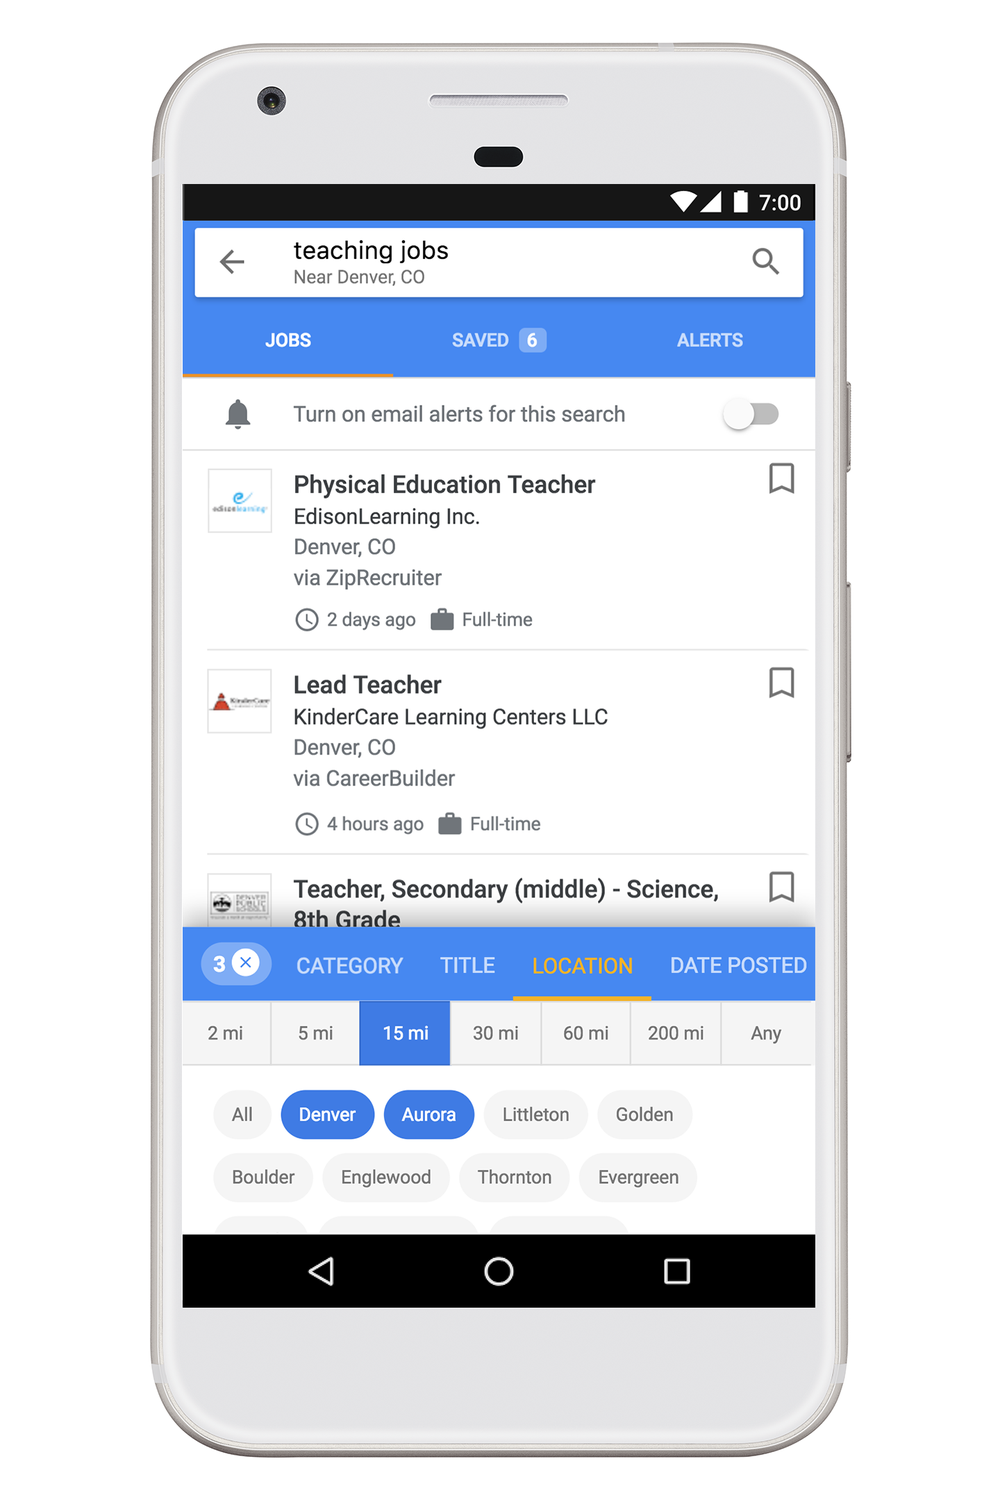 Google Job Search Adds Salary Ranges, Location Filters, Saving Jobs